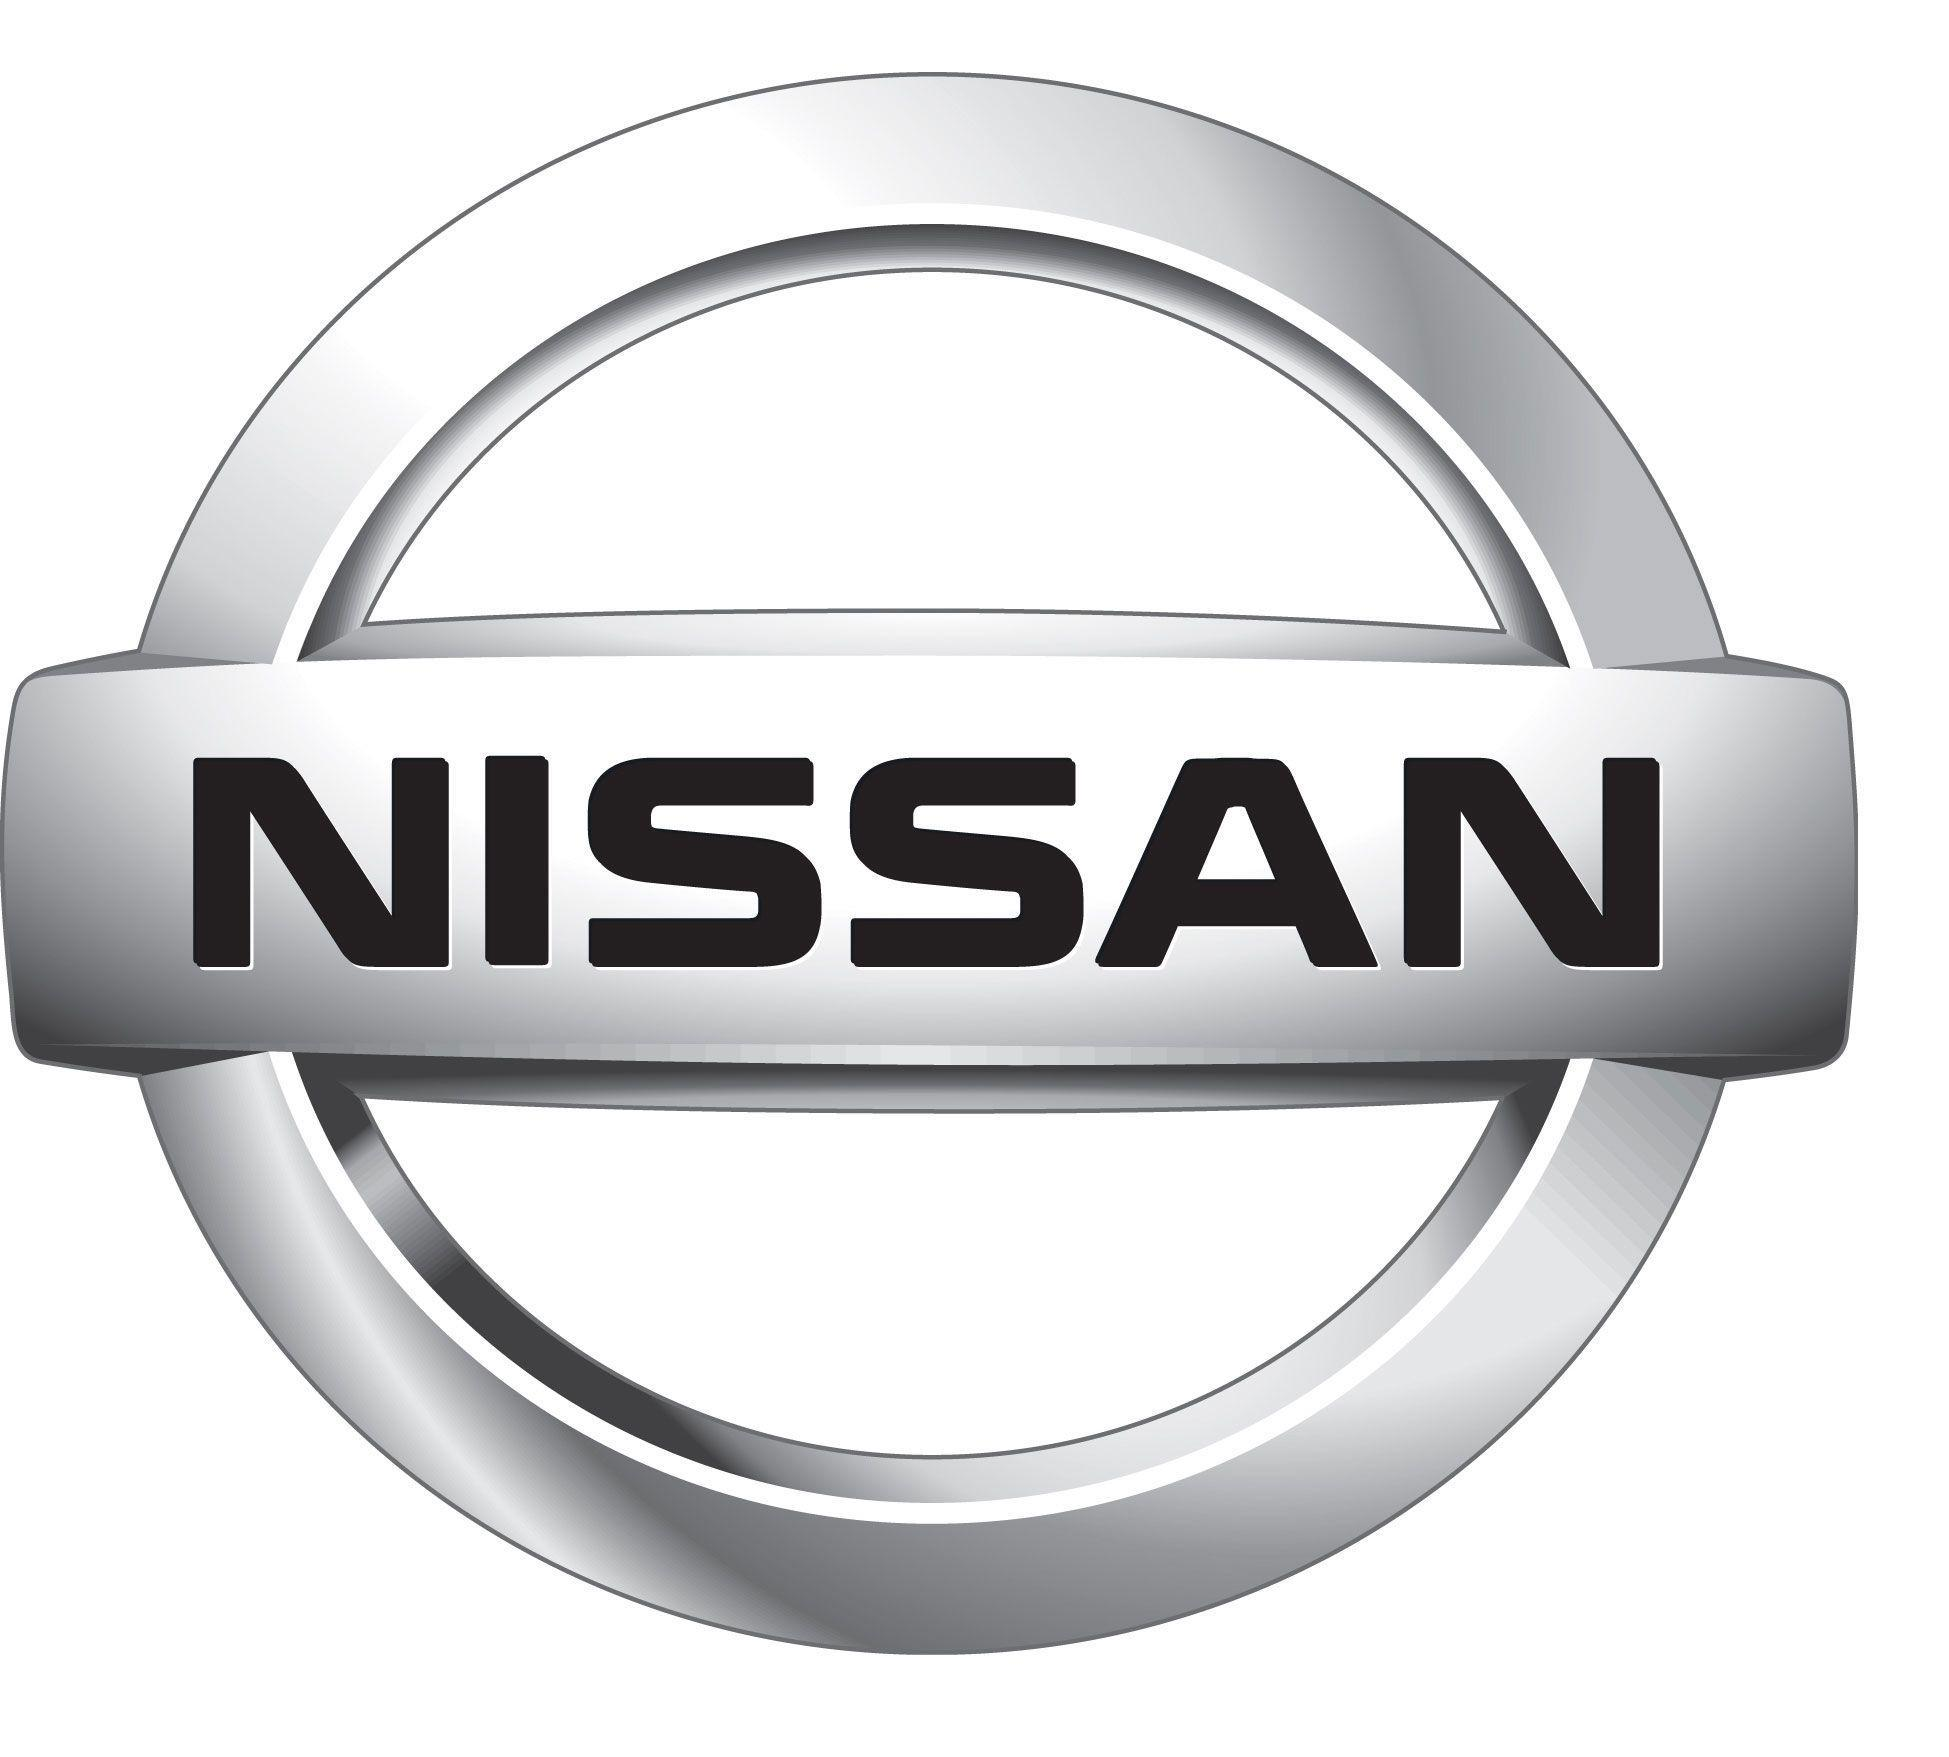 Nissan Logo Wallpaper 6015 Hd Wallpapers in Logos - Imagesci.com